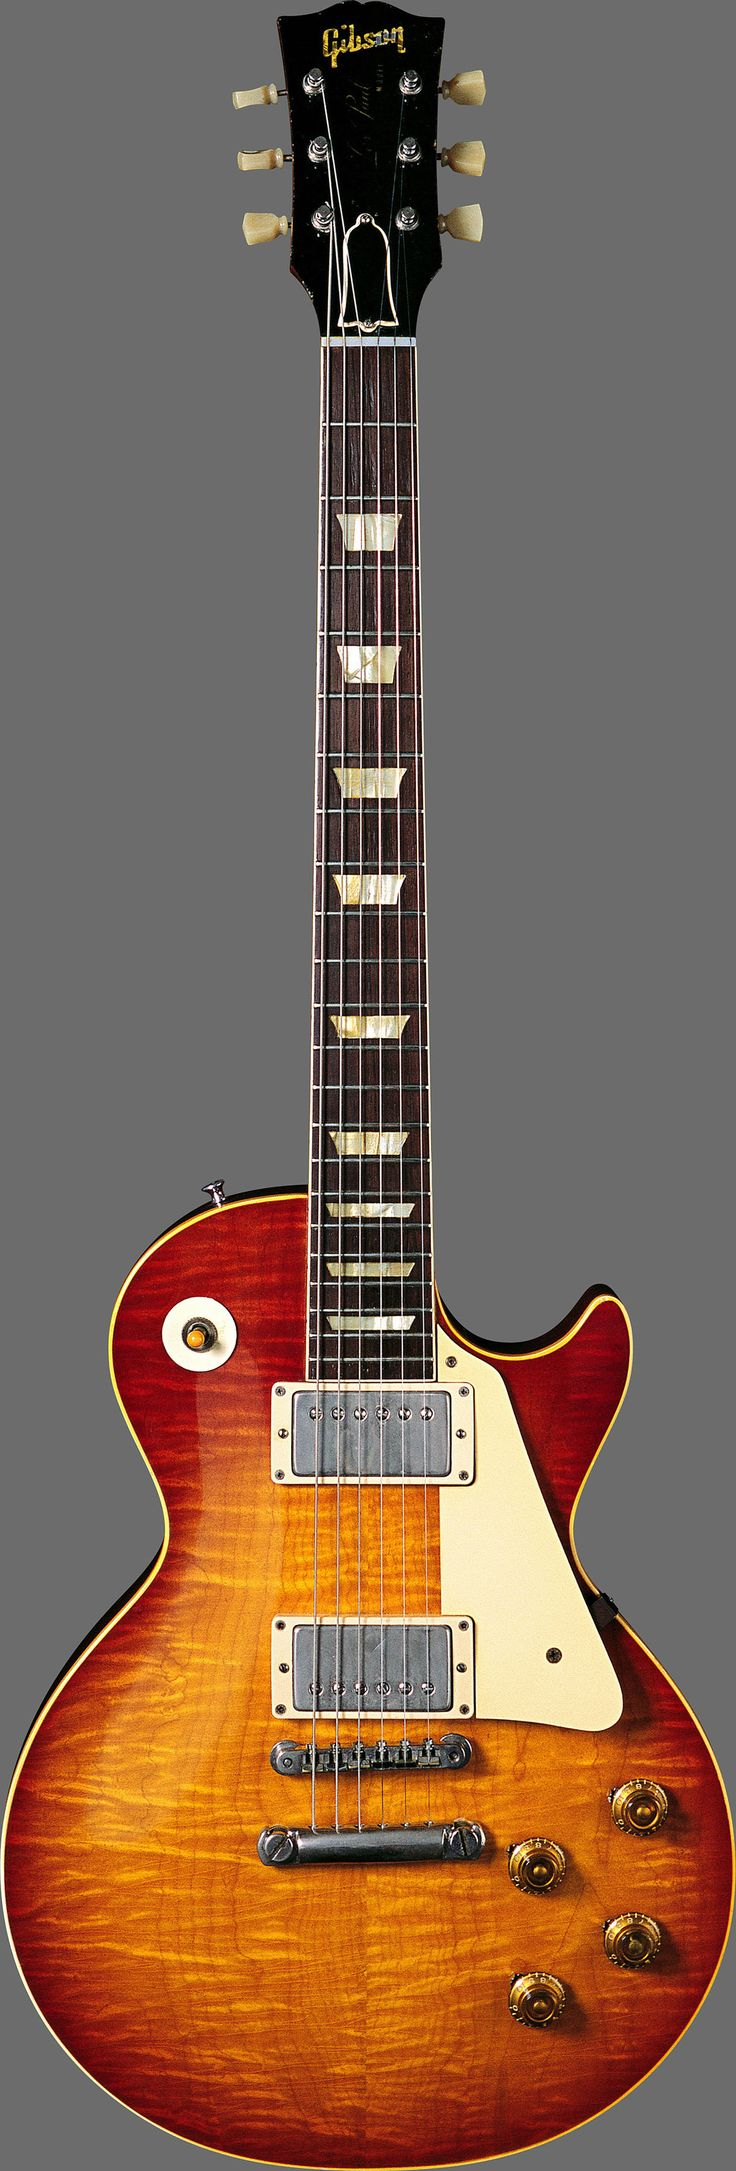 "Gibson Les Paul---- ""The famous Gibson Les Paul is pure classic rock and roll, these instruments are pure with power and precision, you play one it's like getting your hands on a beautiful girl, you'll play for hours!""--- Sean-- ACE  FREHLEY"